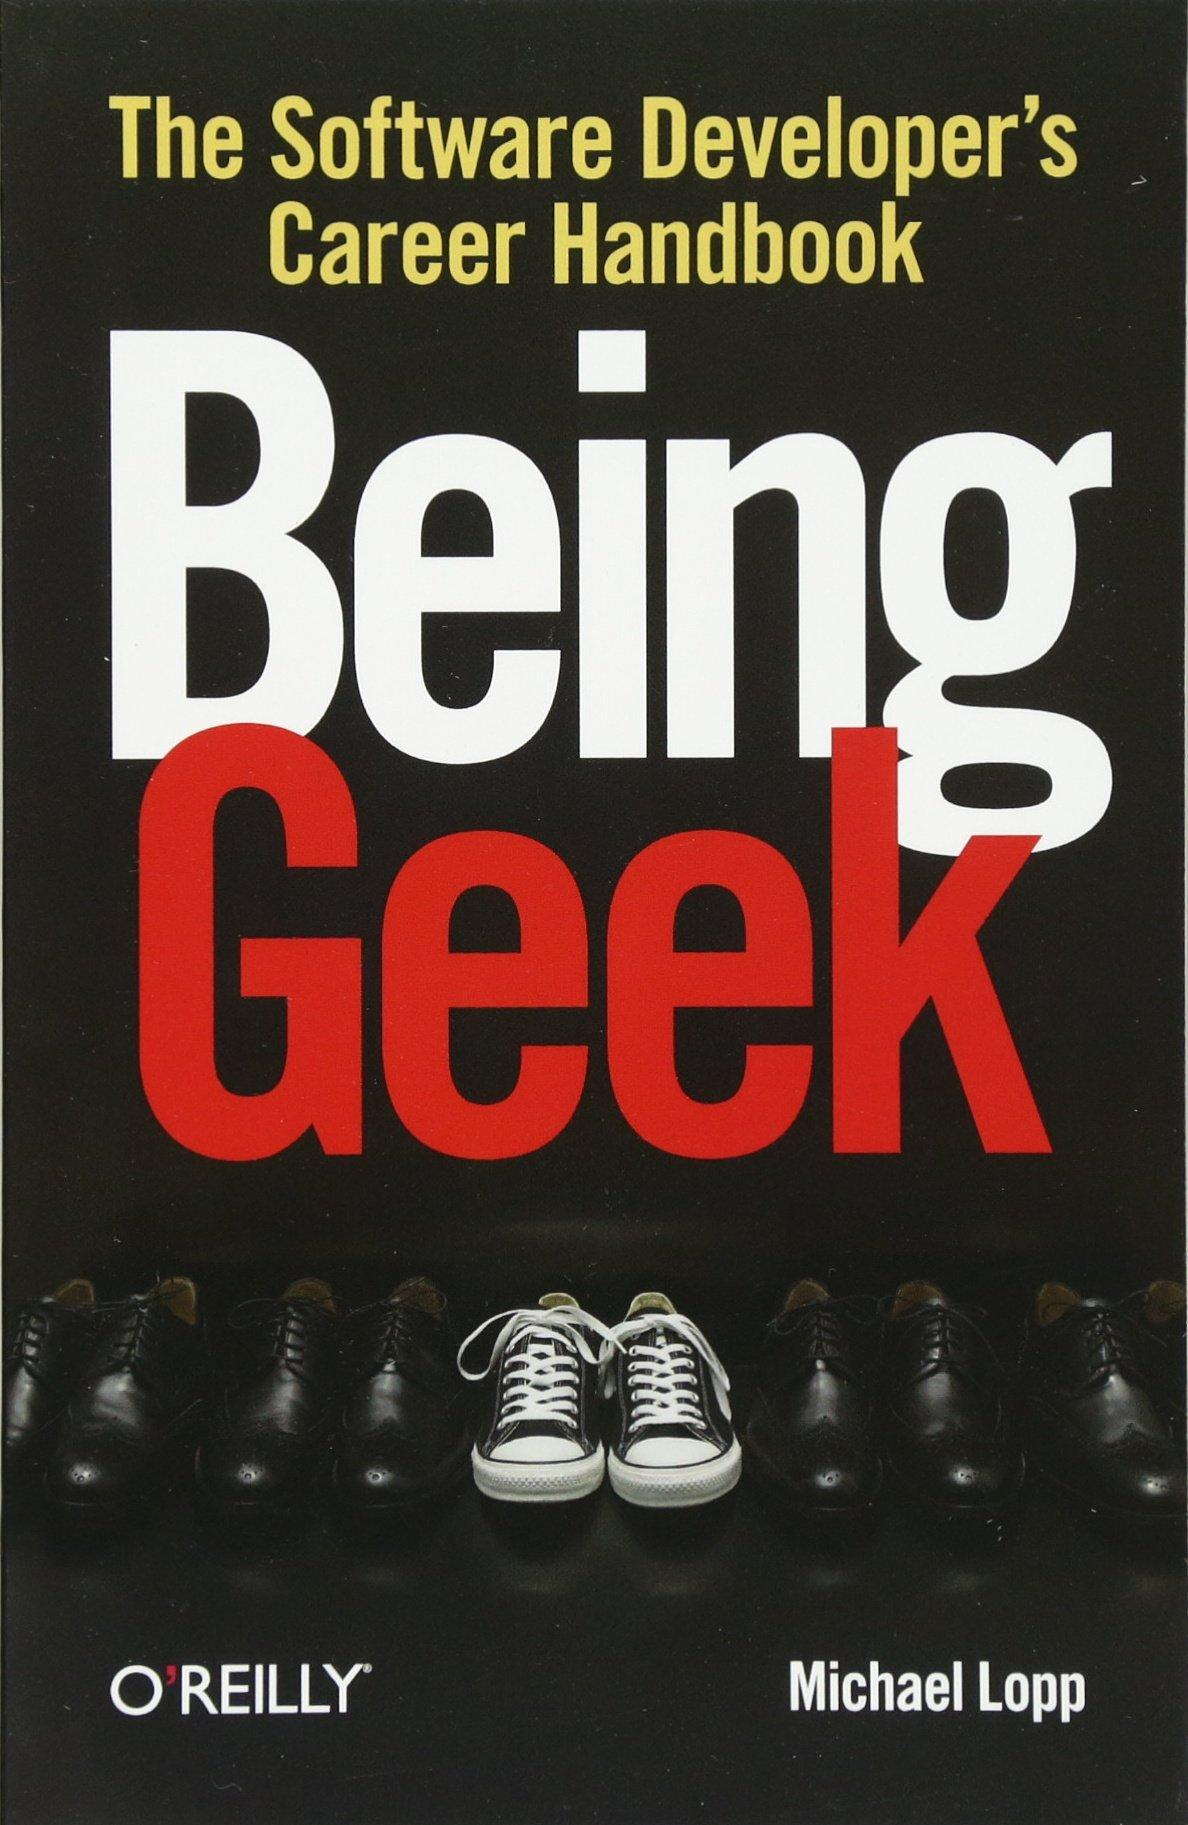 The cover of Being Geek, by Michael Lopp